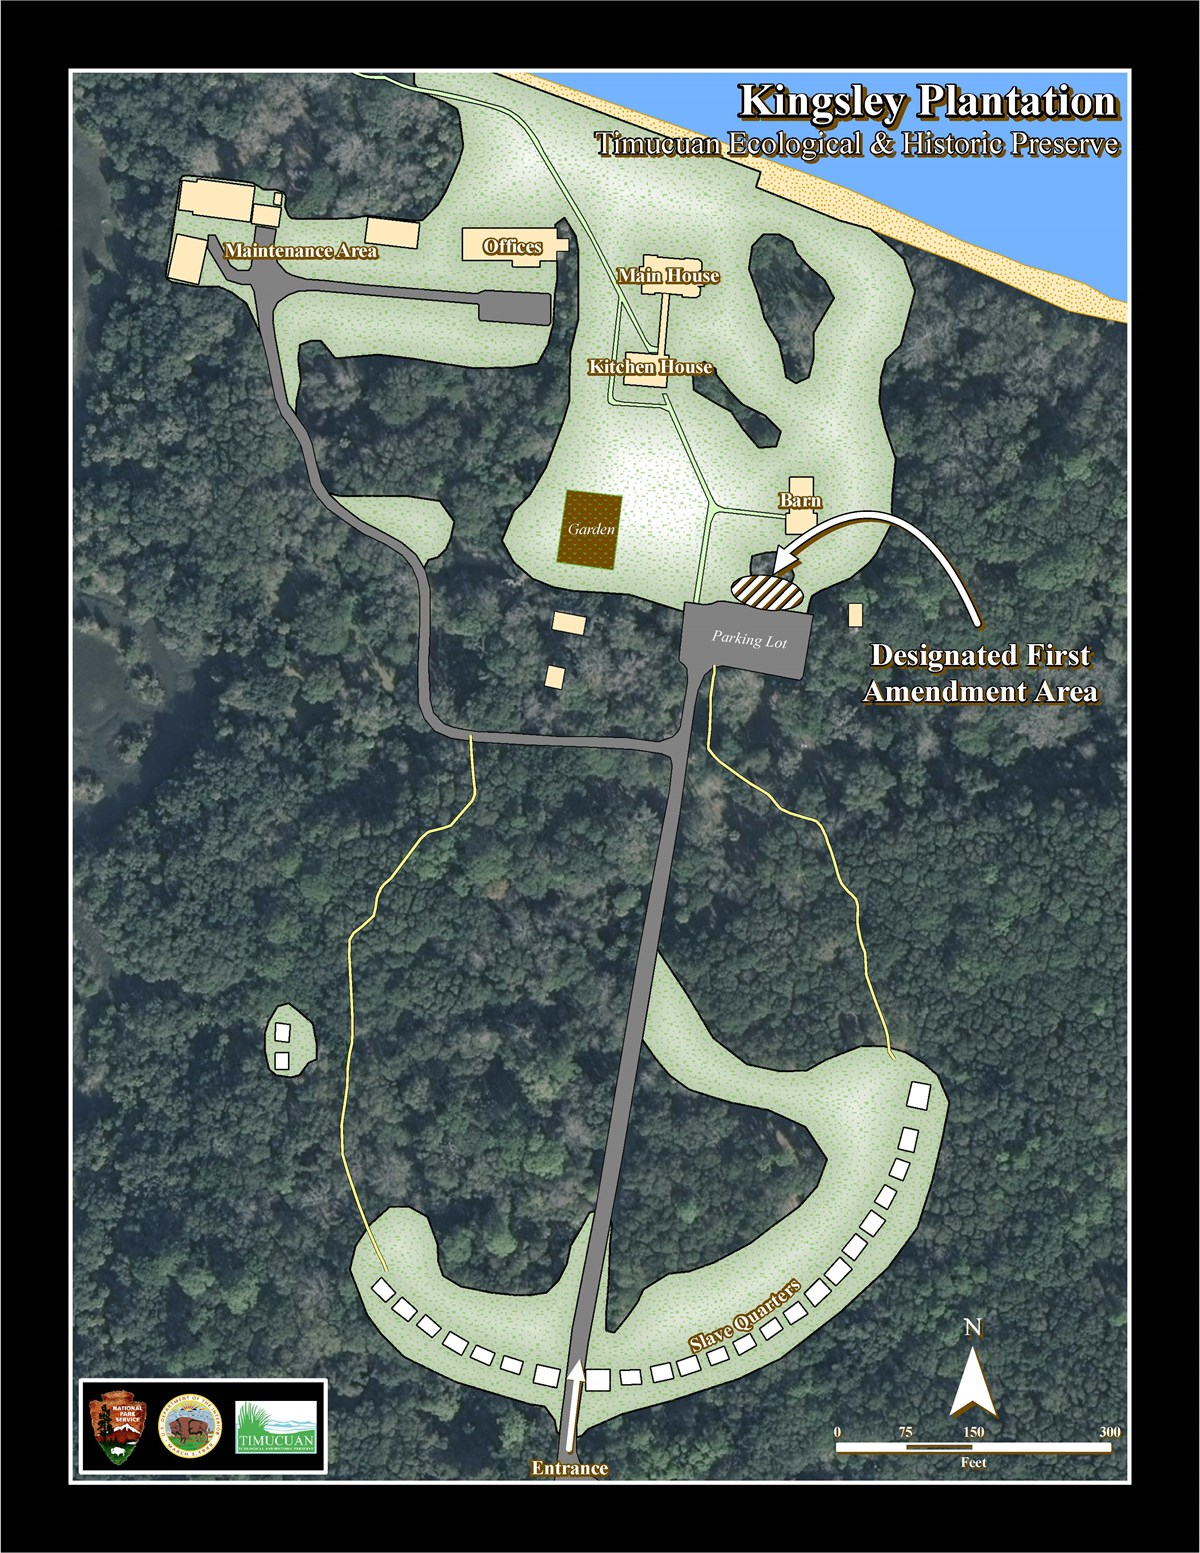 map of Kingsley Plantation designating a free speech area just north of the parking lot.